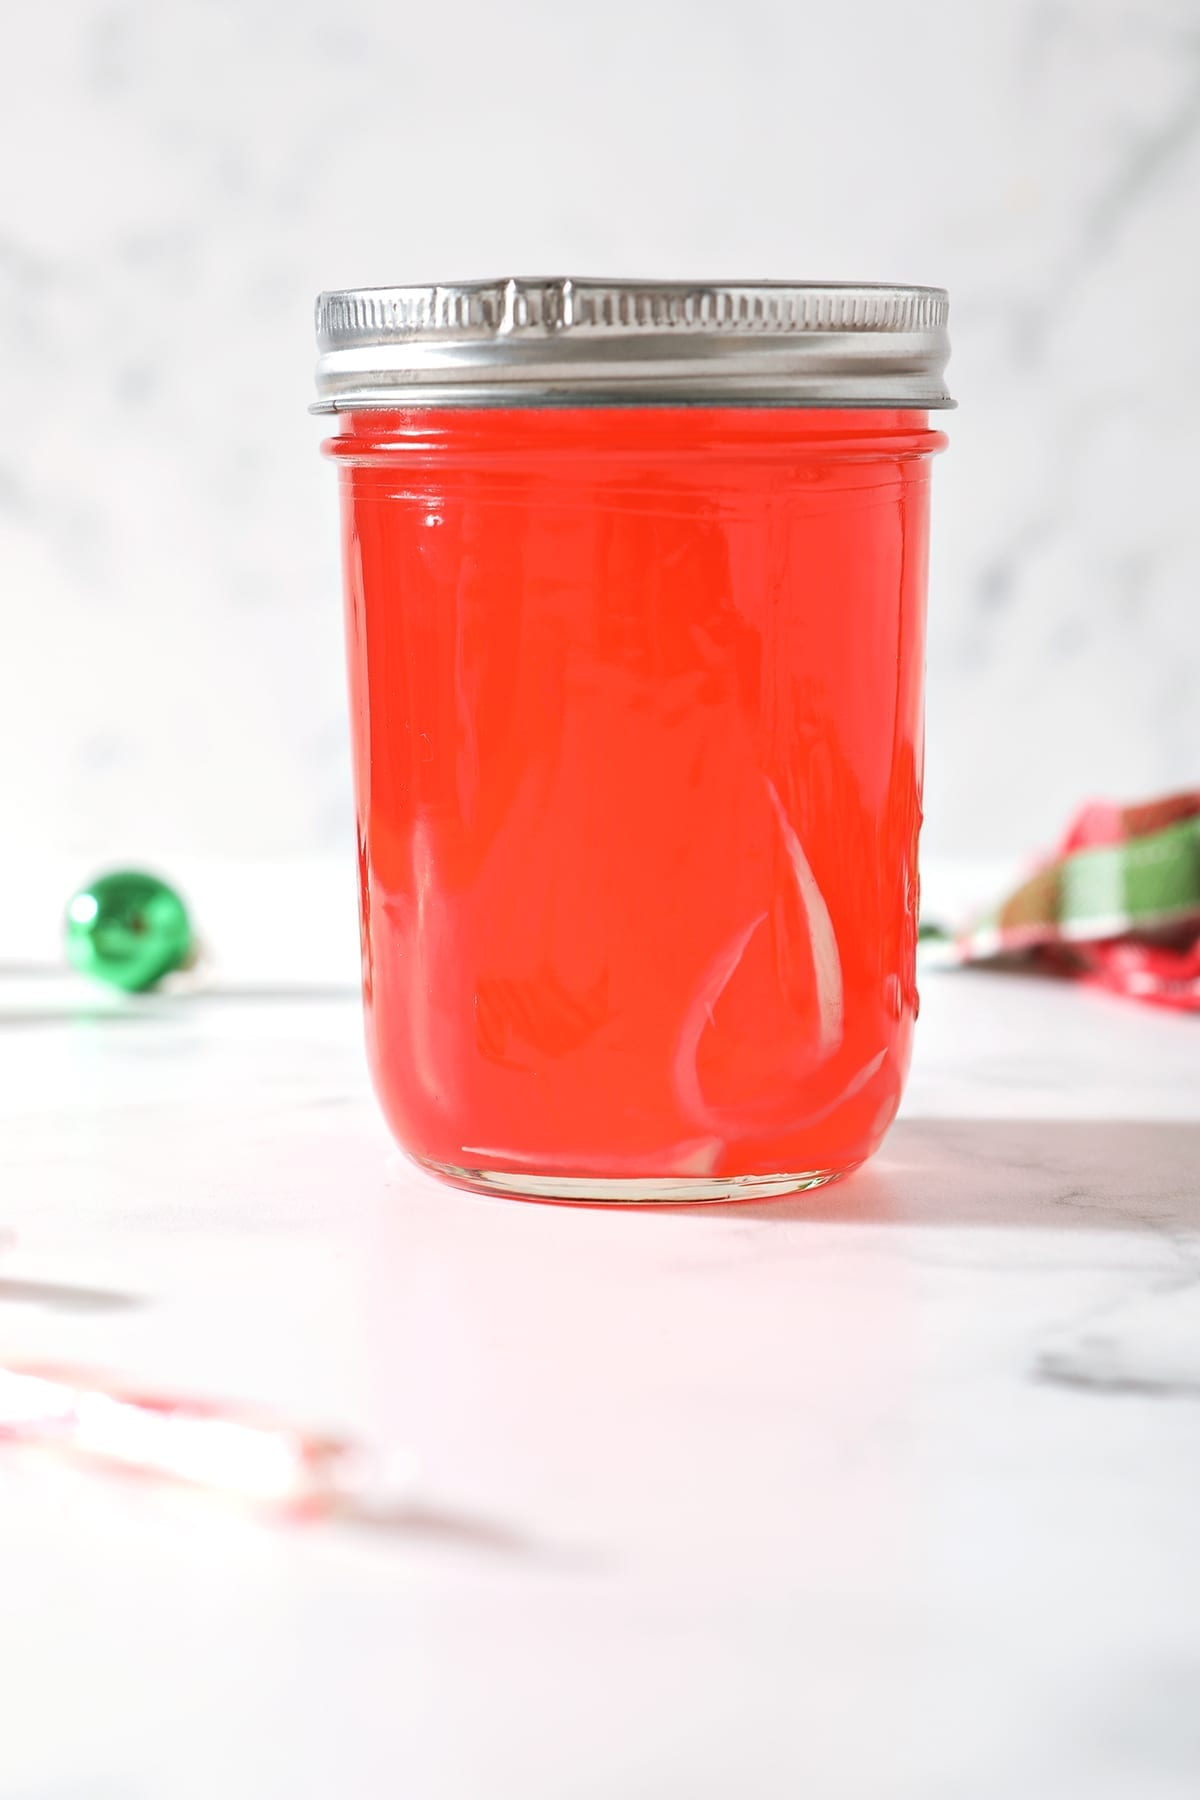 A bright red liquid is left in a mason jar after candy canes dissolve into vodka